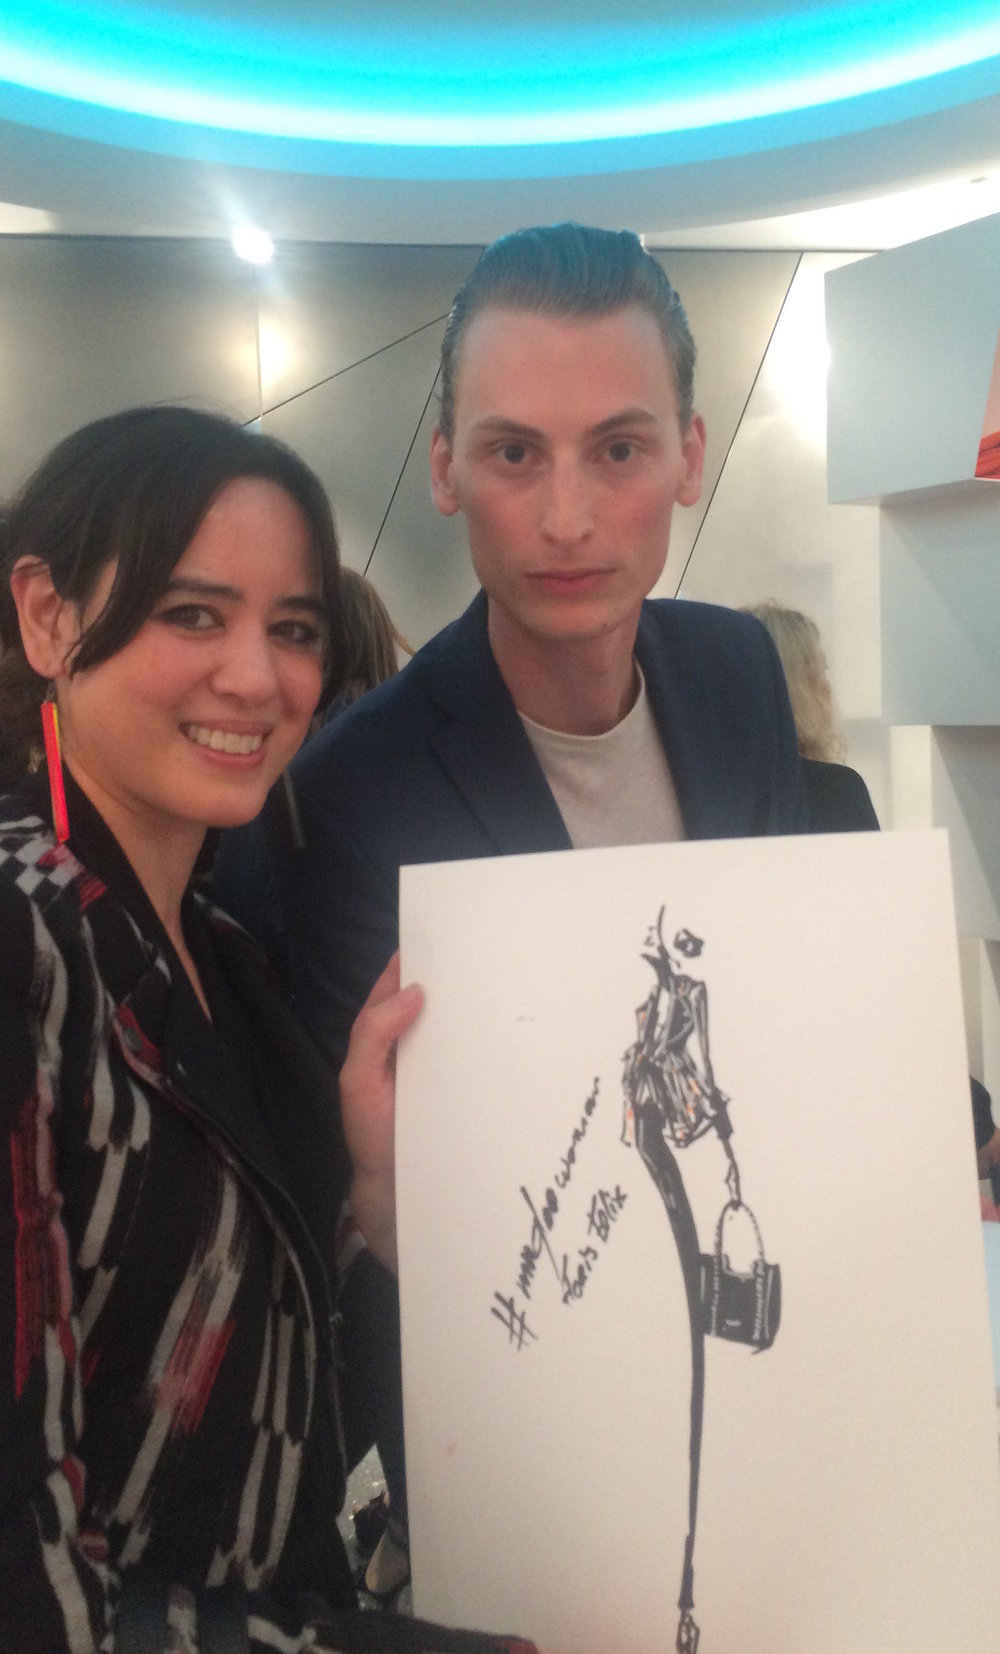 Me (left) holding my portrait by artist Felix Floris (right) at Mugler